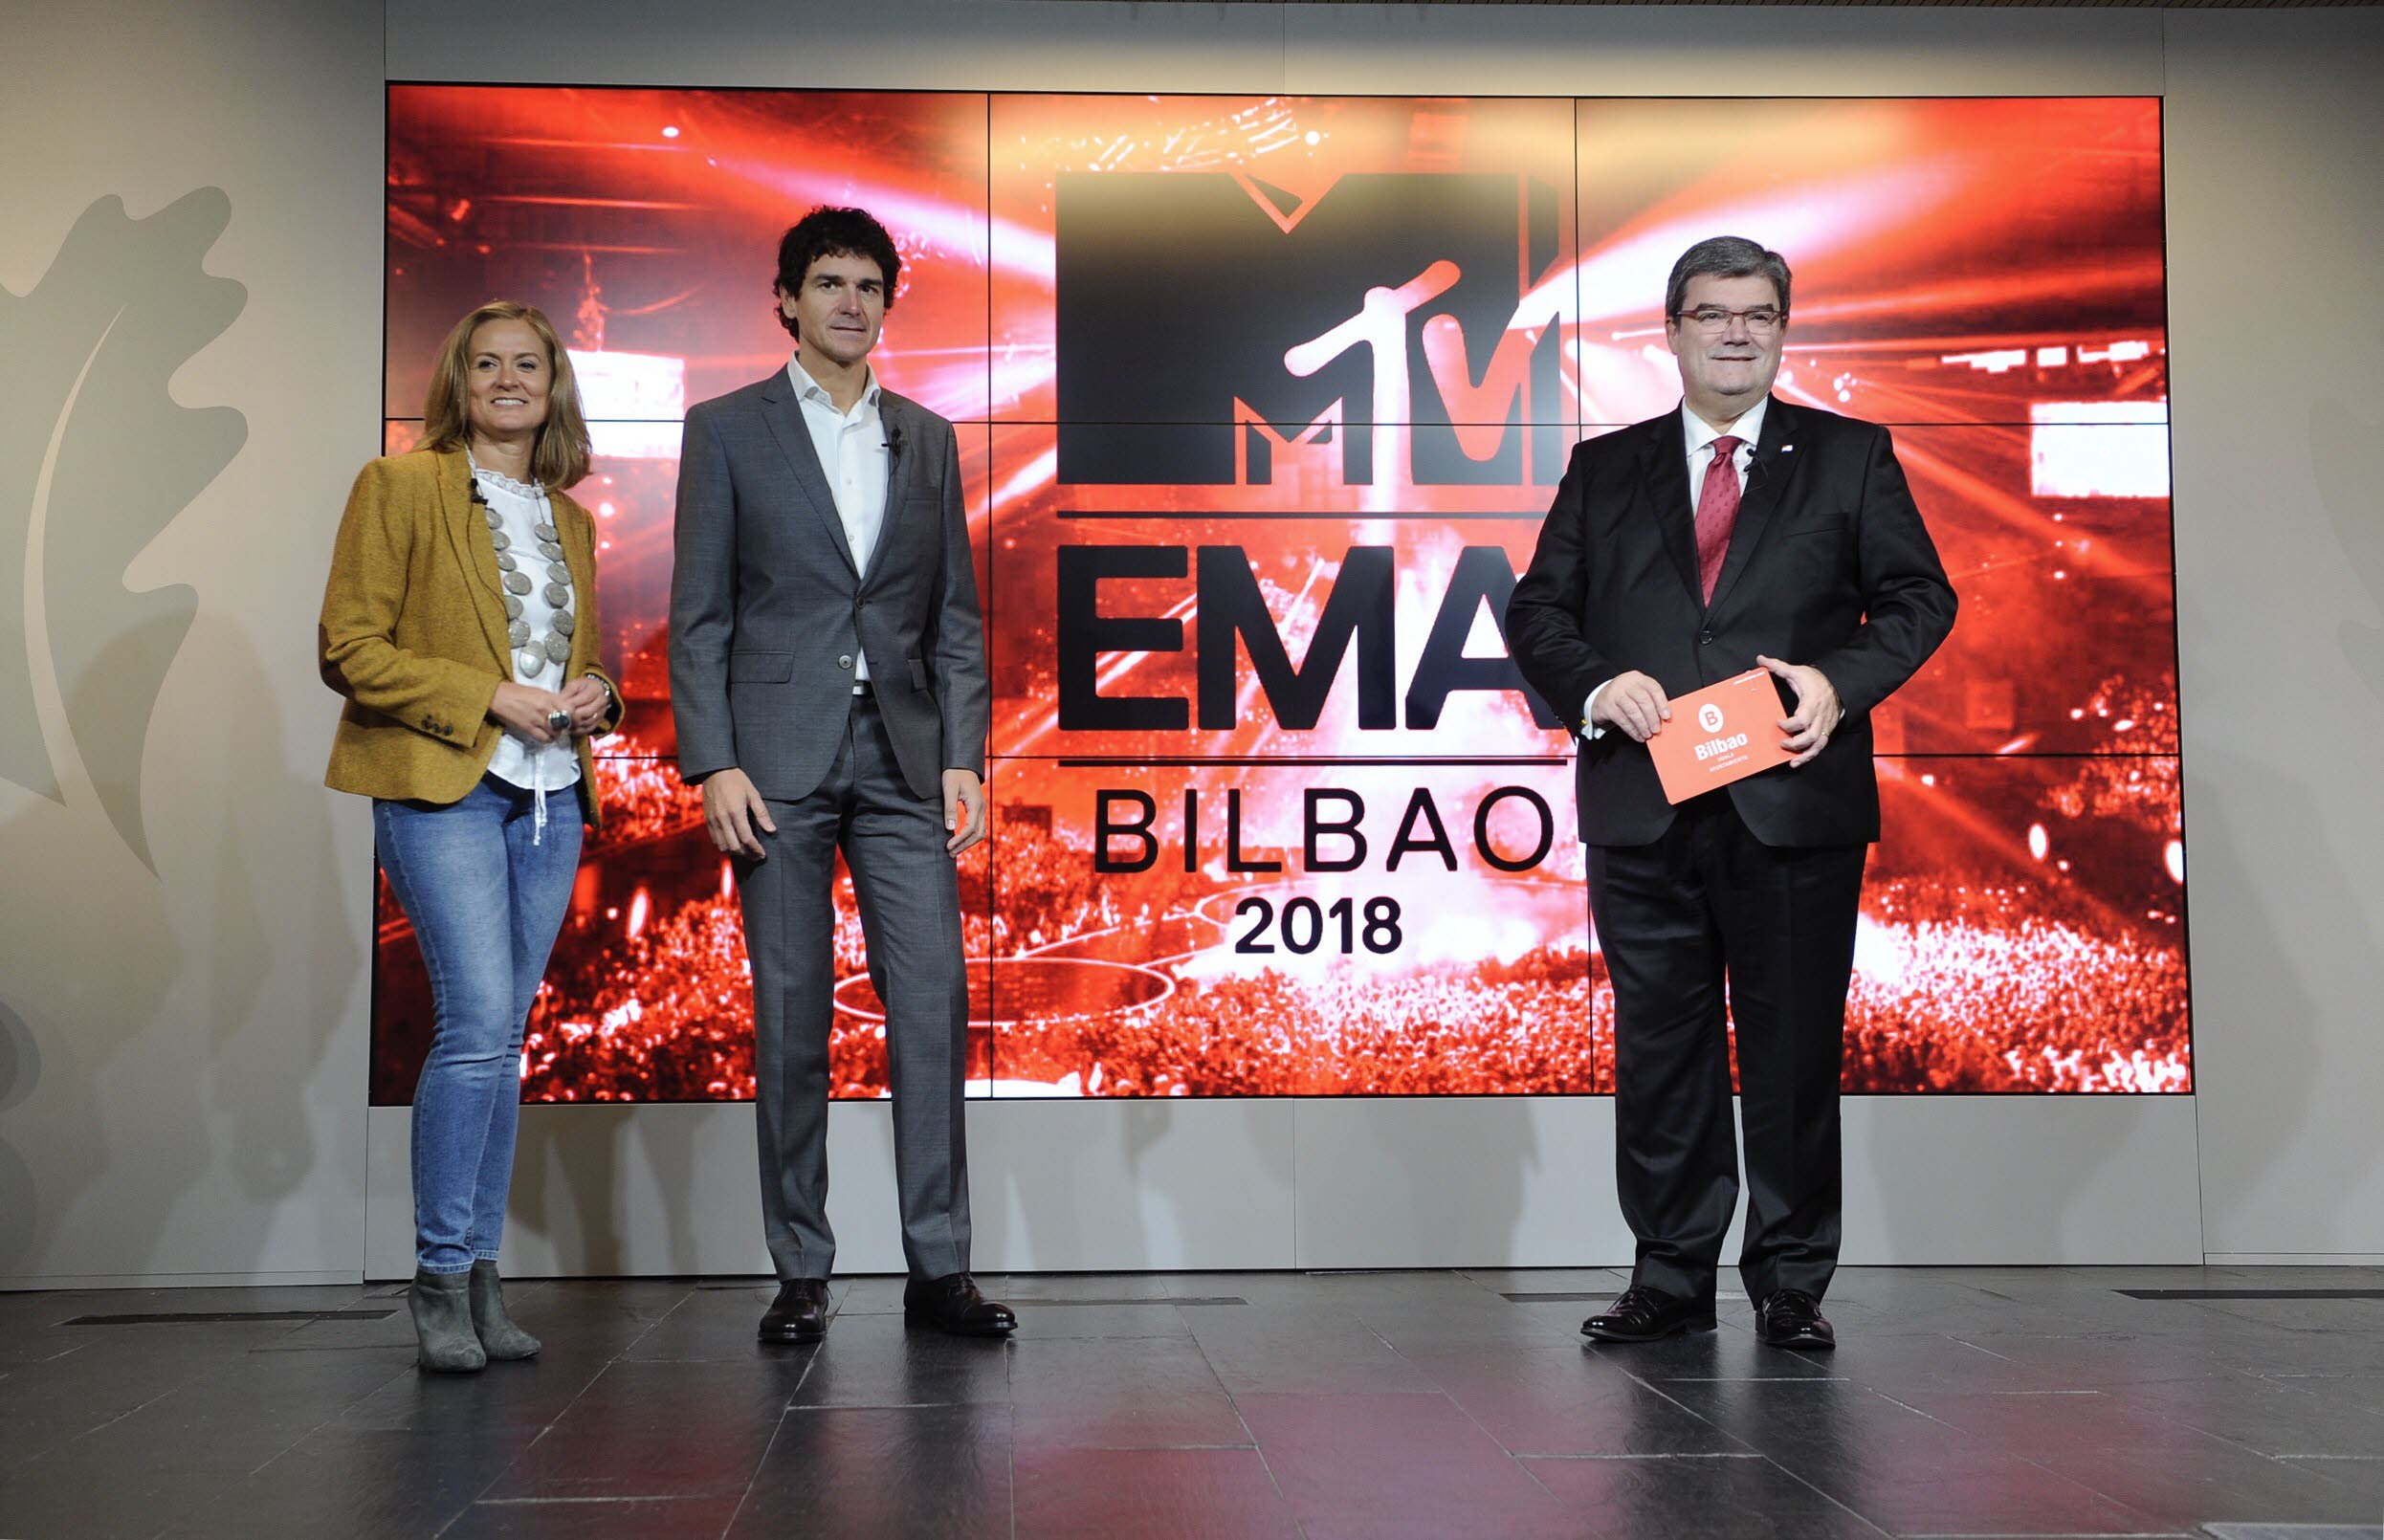 Bilbao announced the 2018 MTV Europe Music Awards. Manu Cecilio / EL CORREO